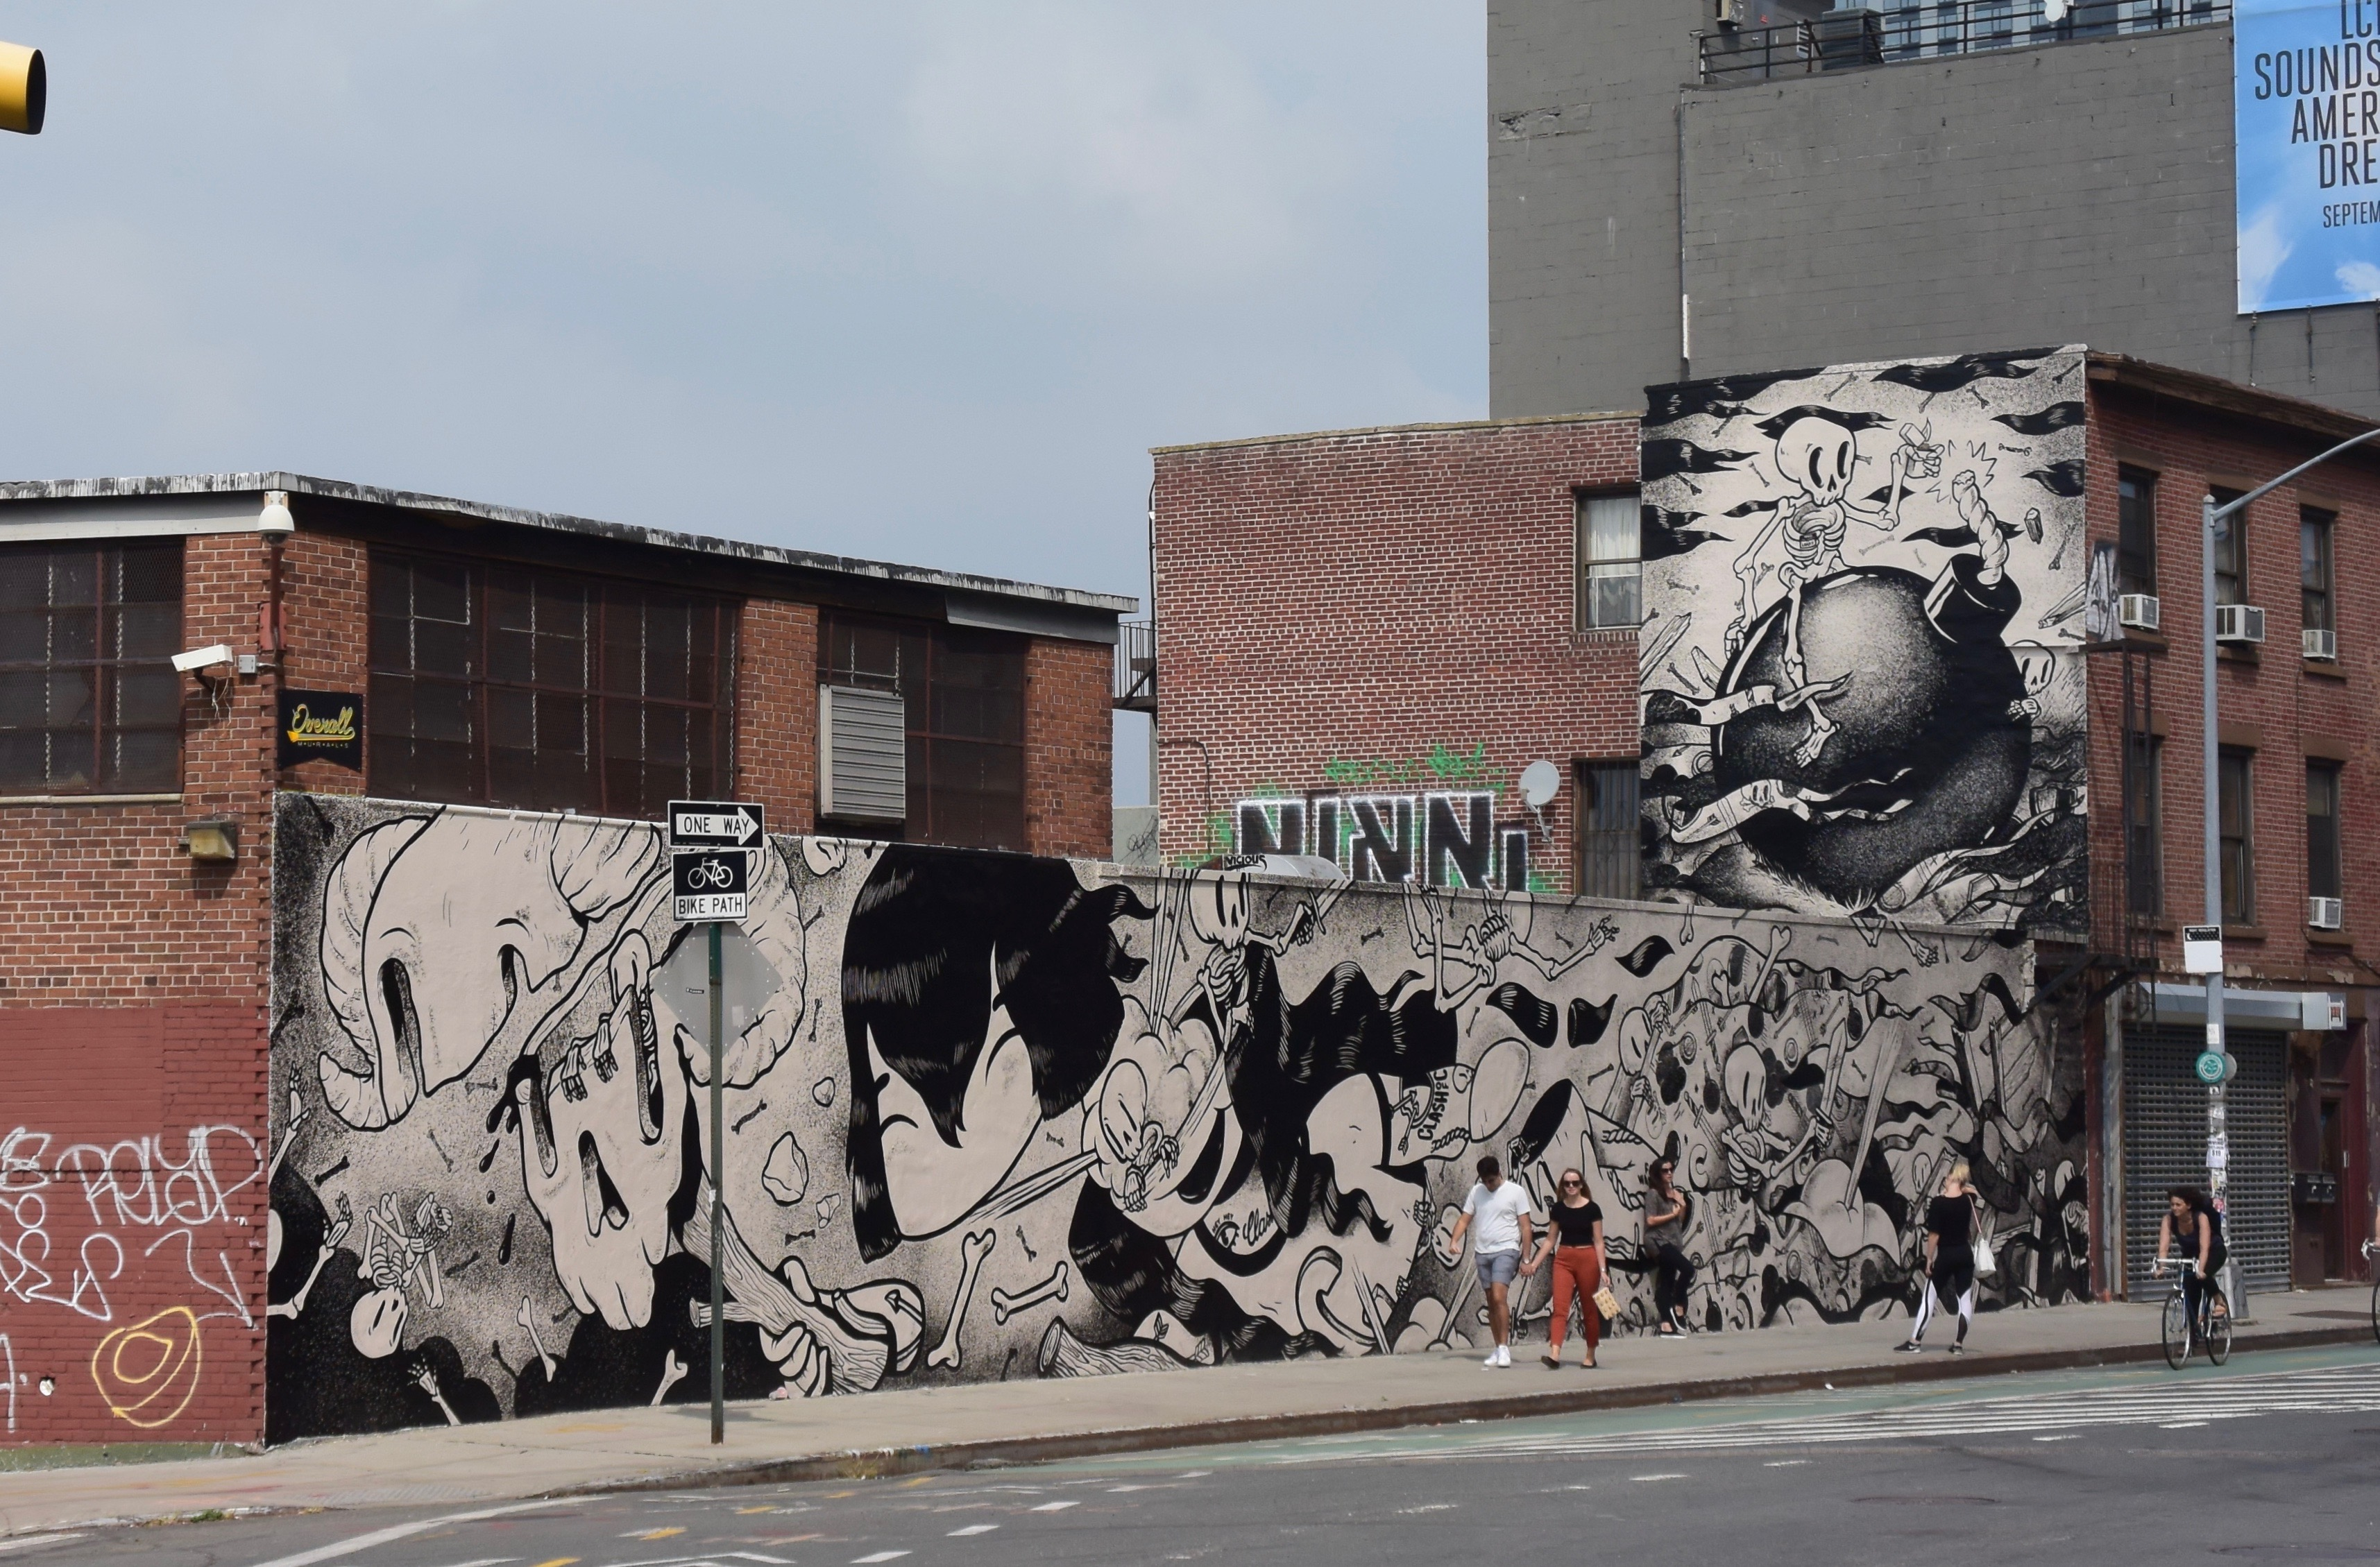 Brooklyn street art - monochrome